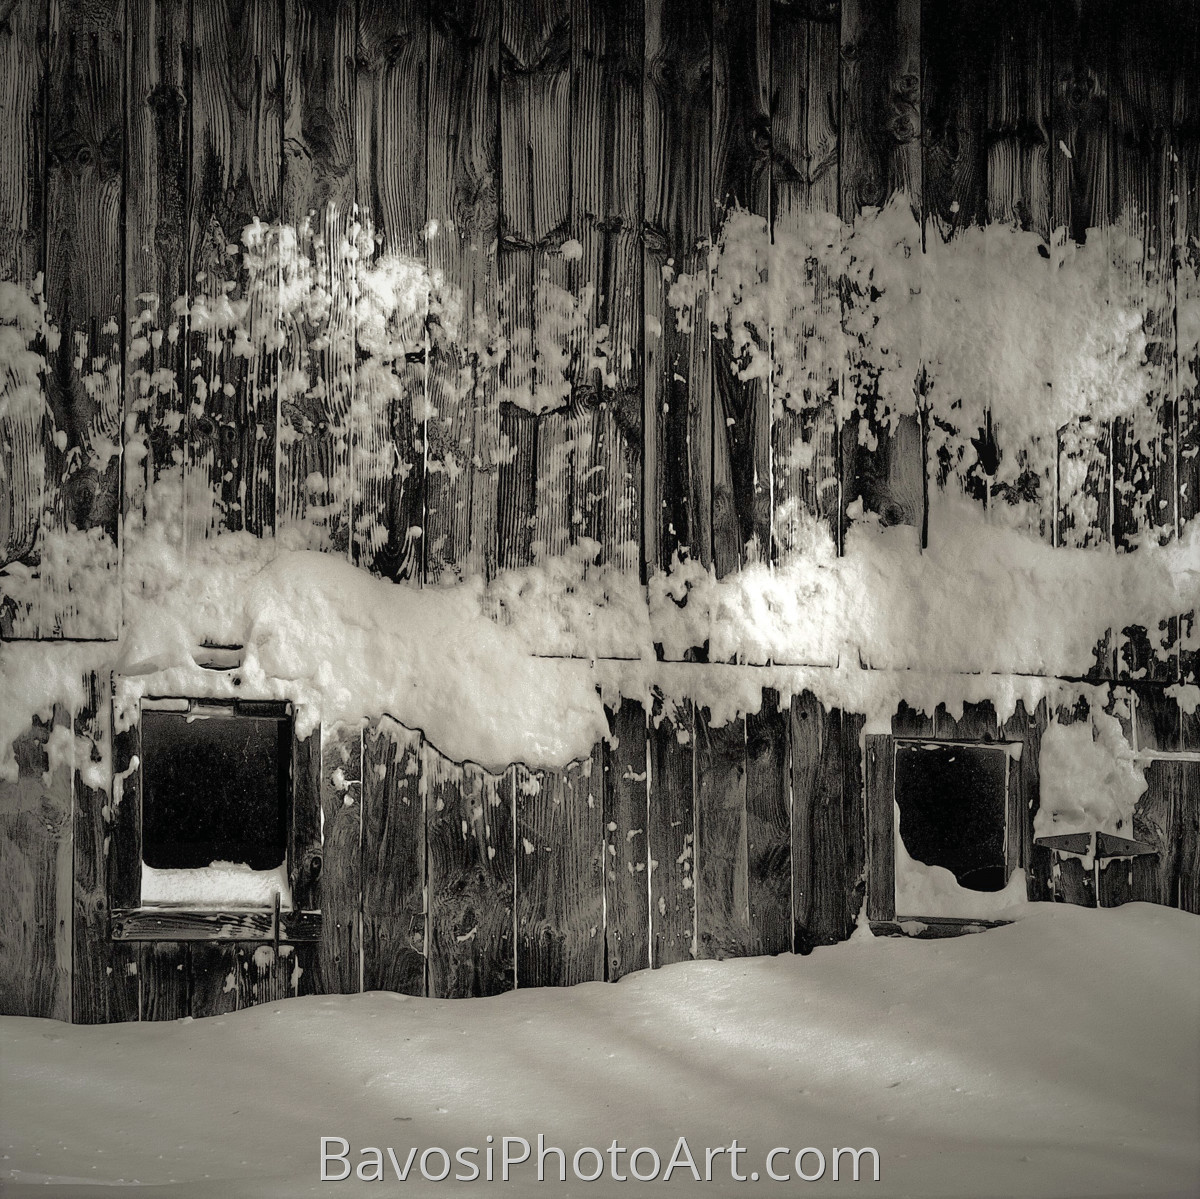 Snow On A Barn Wall (large view)